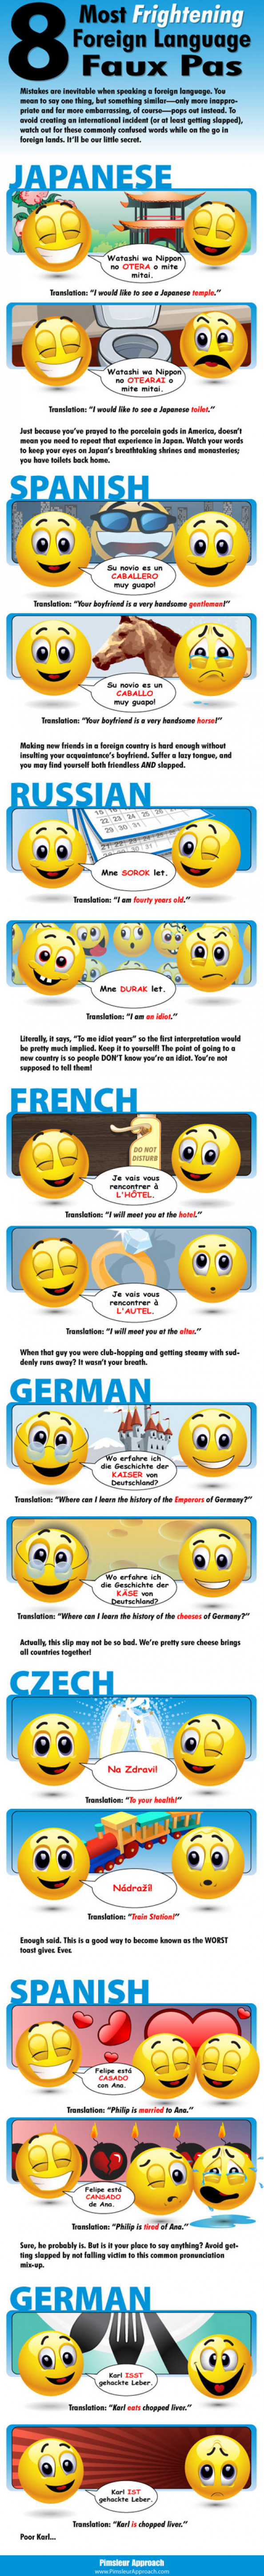 Pimsleur Approach: 8 Most Frightening Foreign Language Faux Pas Infographic